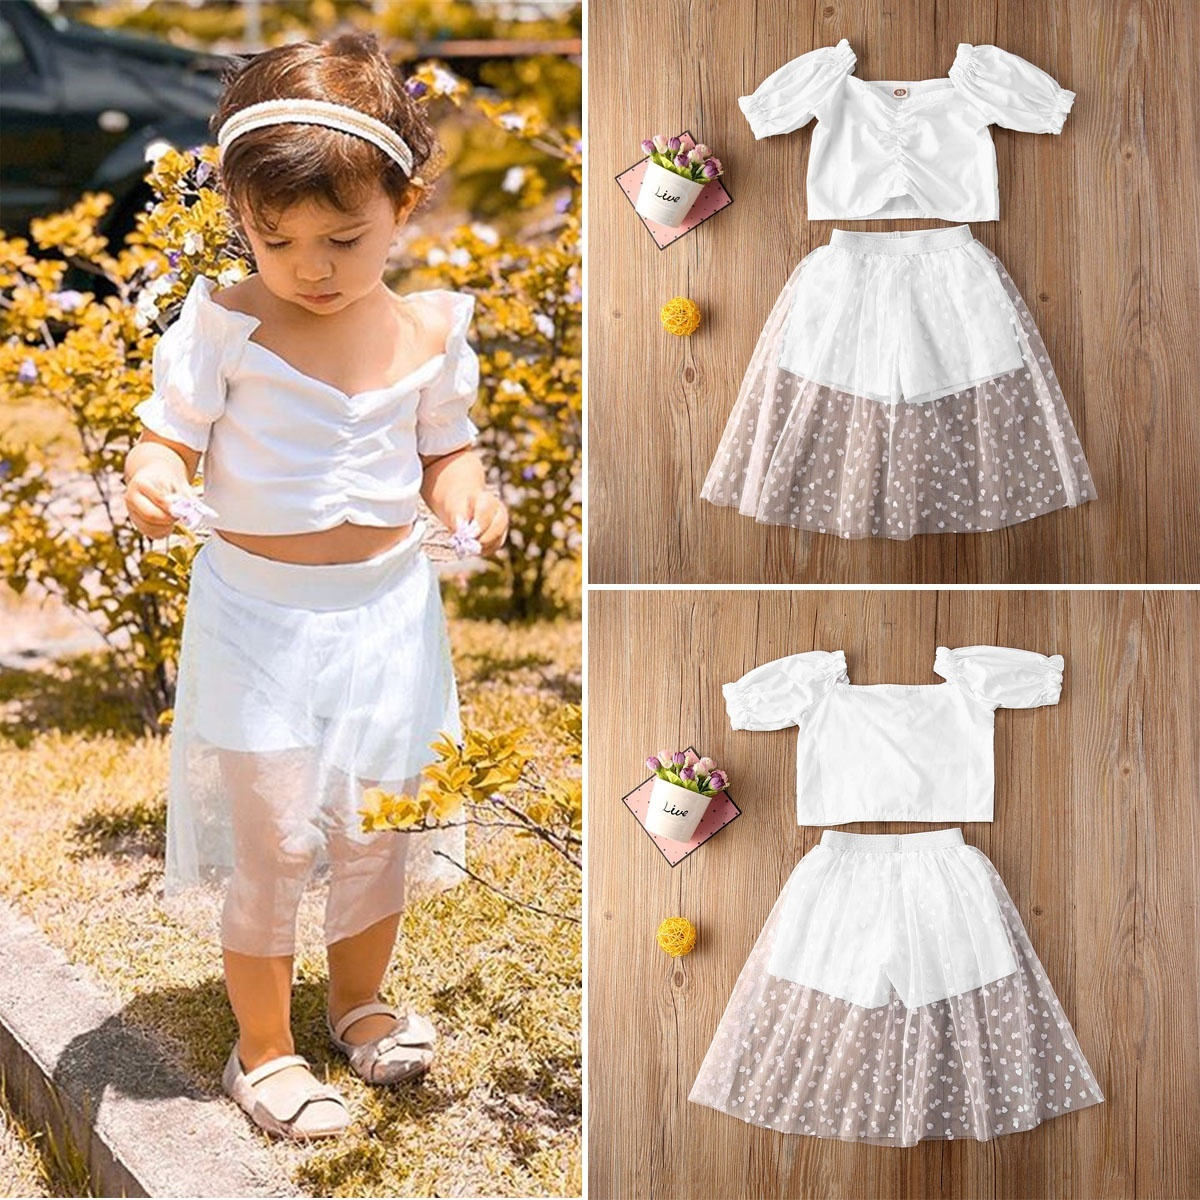 2pcs Toddler Kids Baby Girls Clothes Crop Top Shorts Lace Dress Outfit Summer Set Walmart Canada